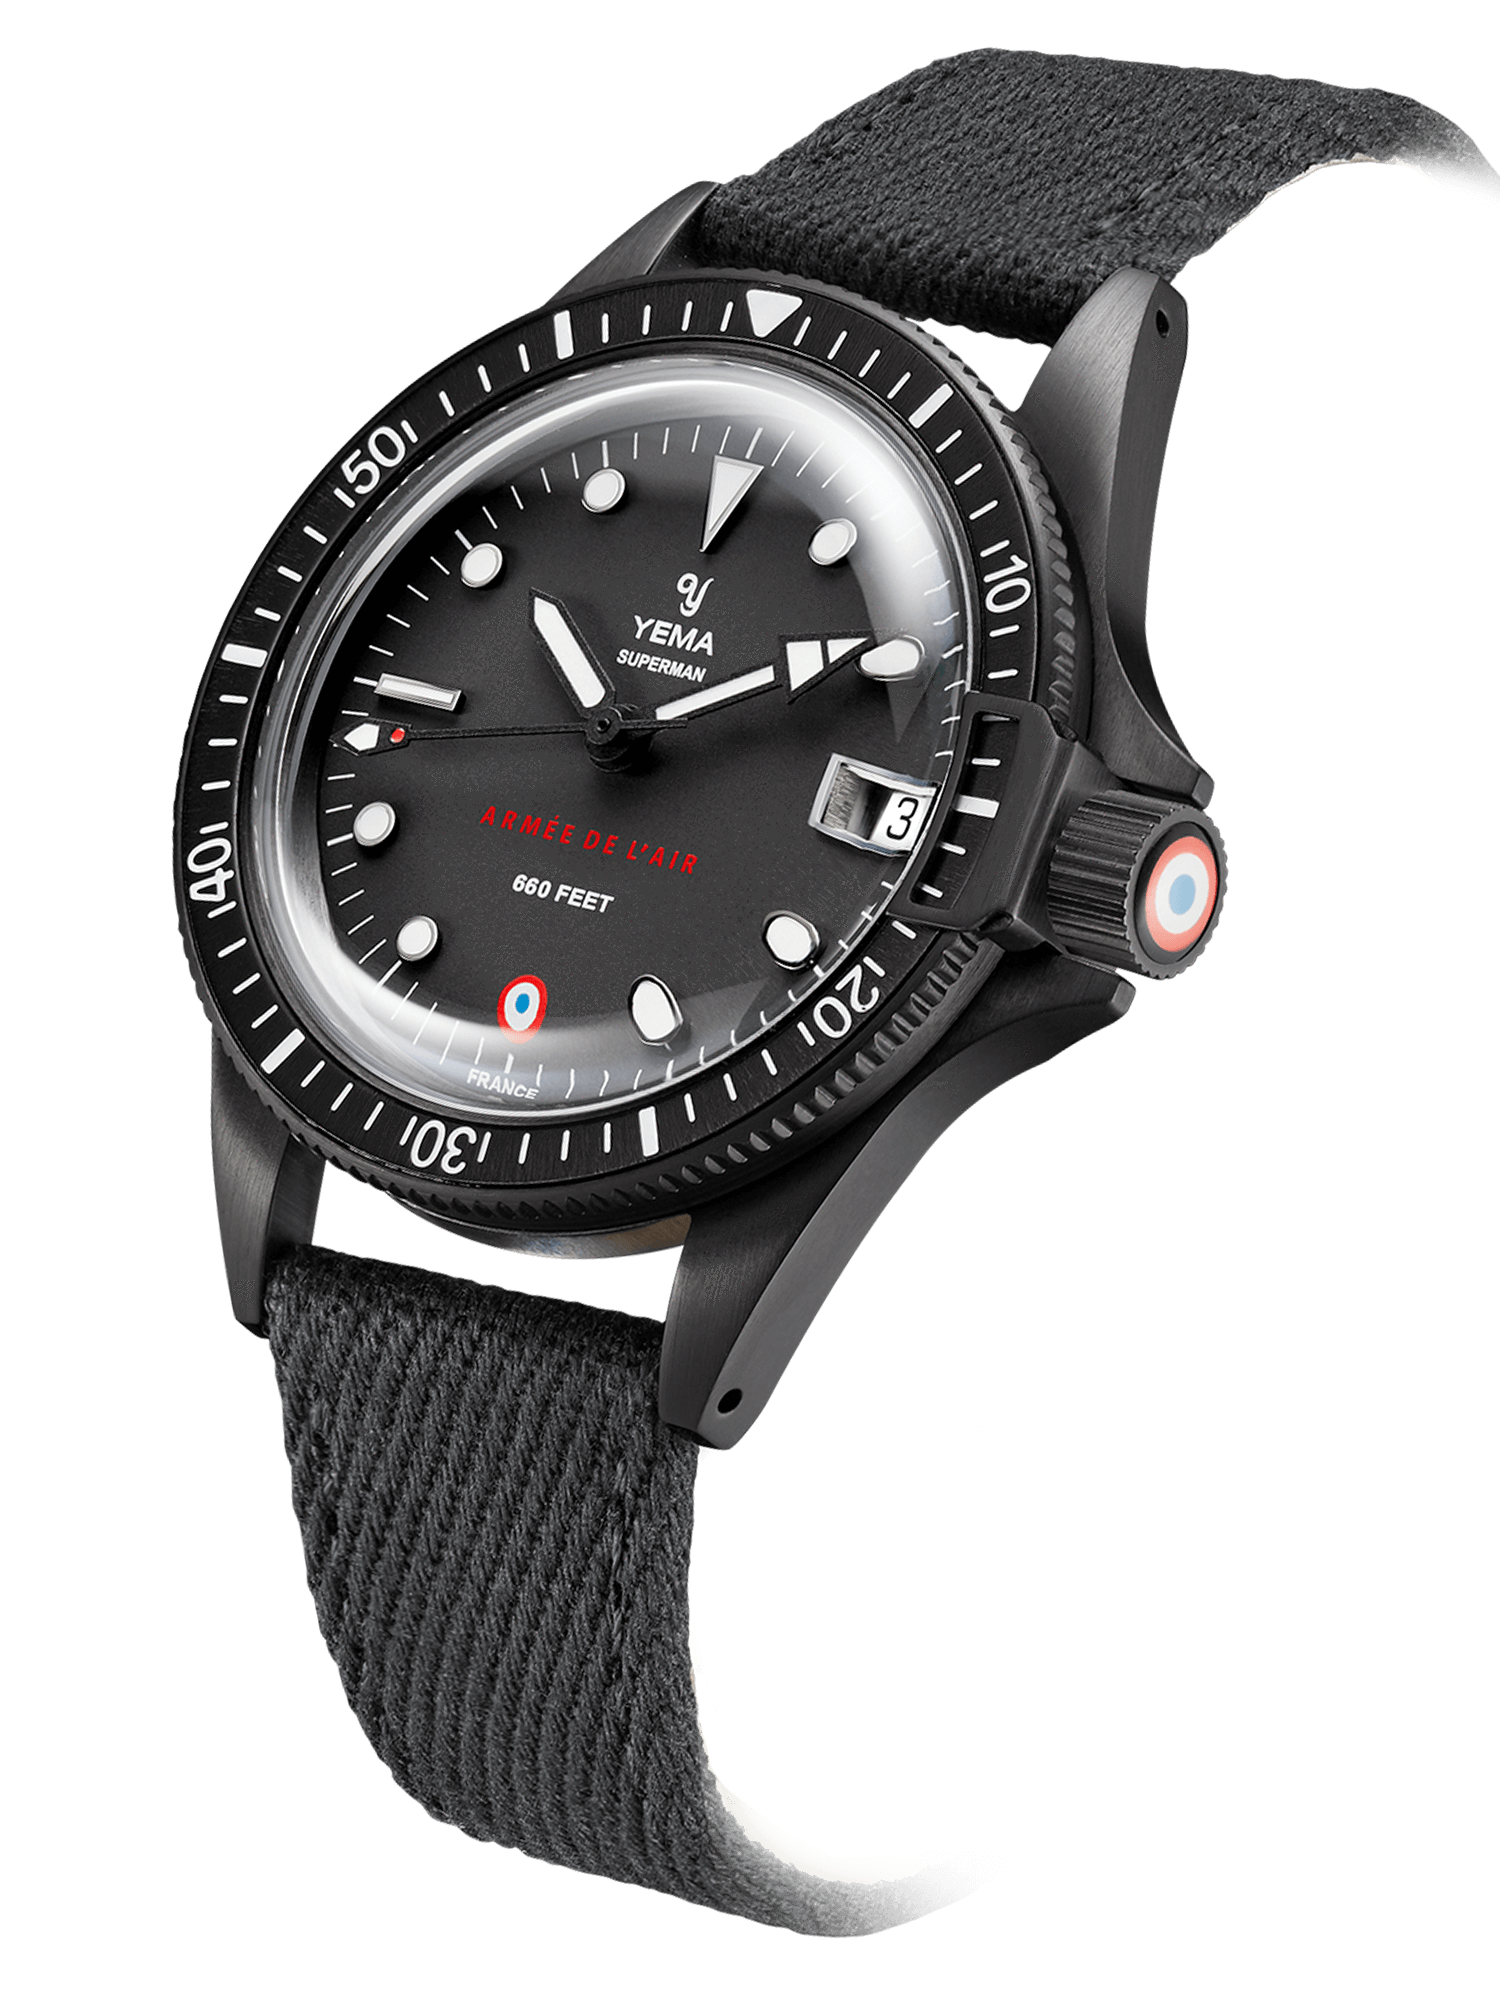 YEMA Superman French Air Force Black quartz, black PVD coated, Stamped French Air Force insignia.